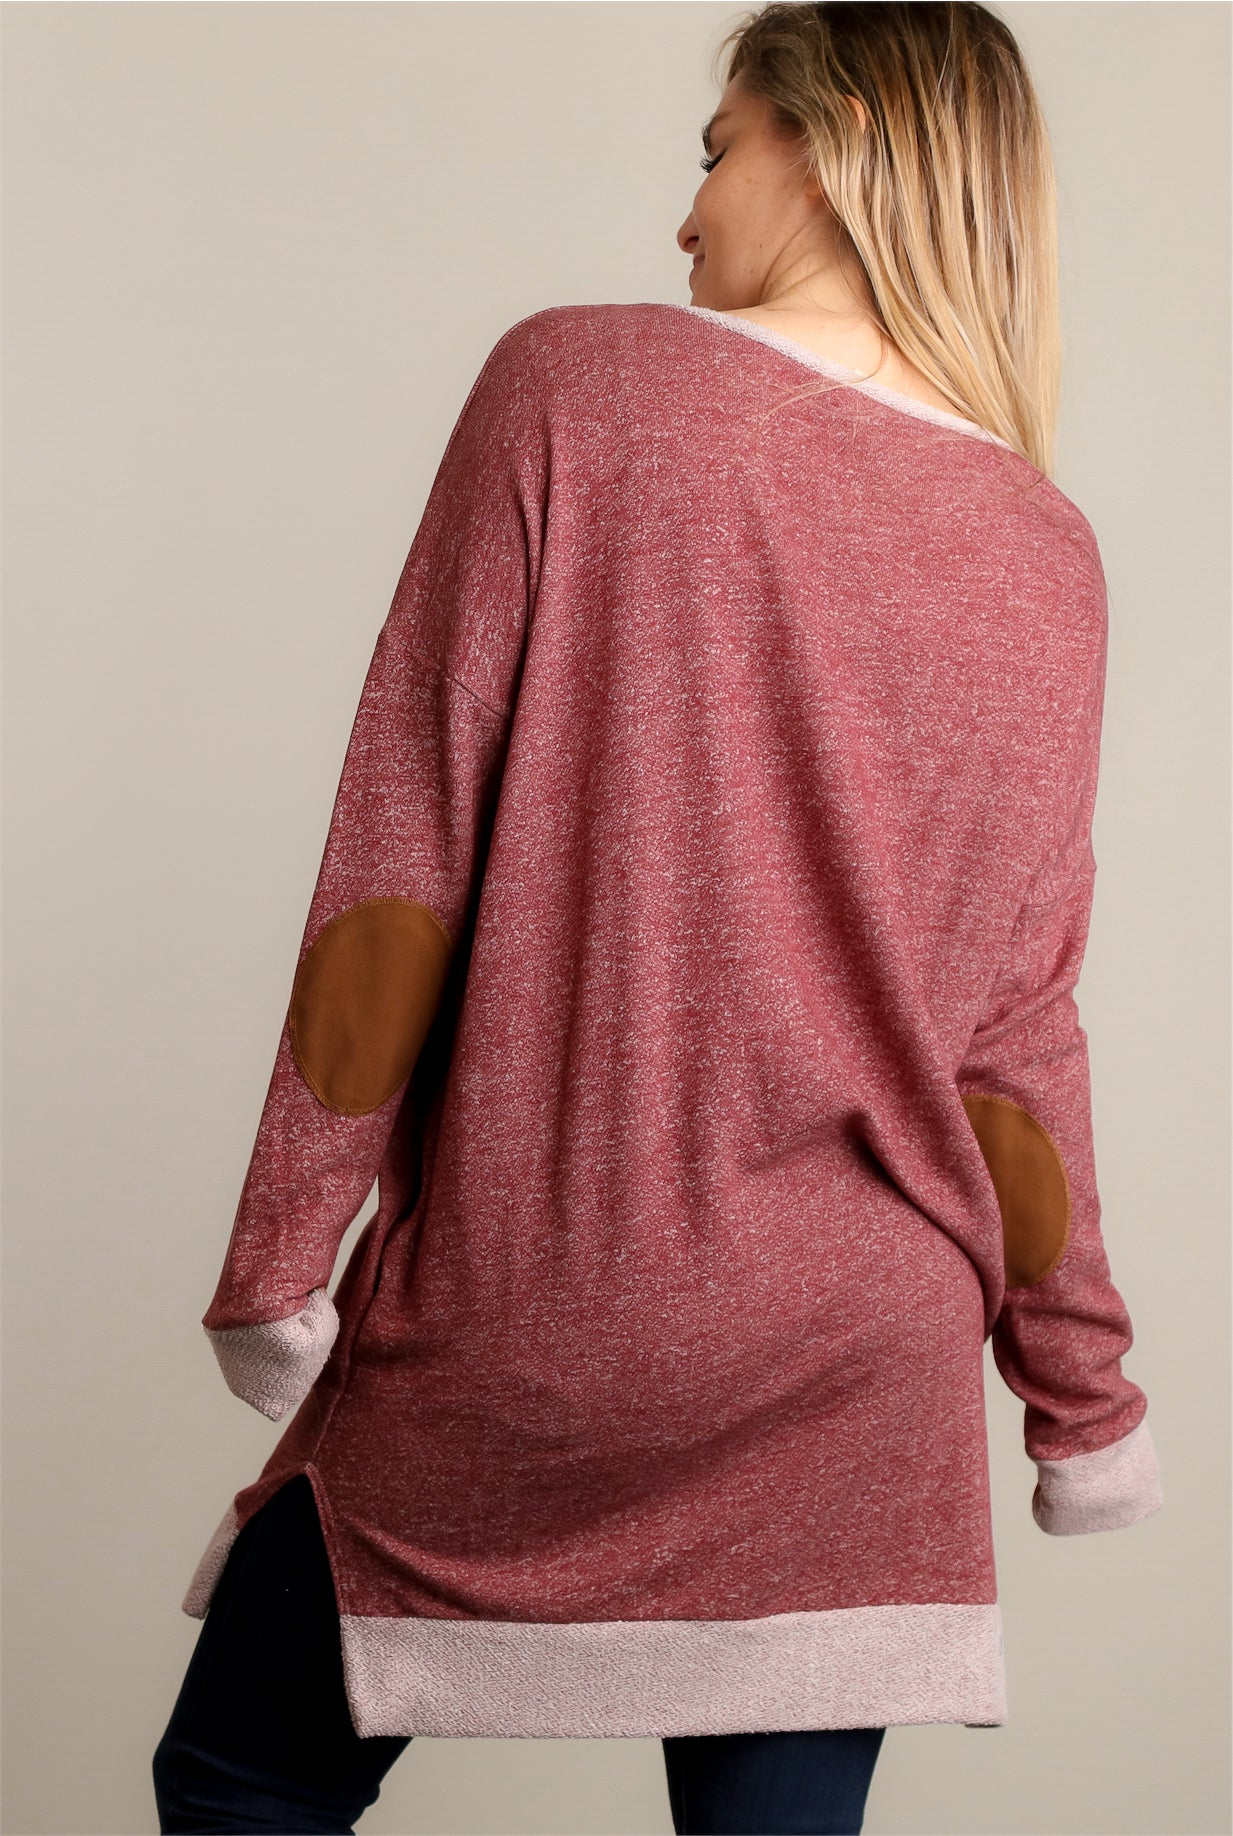 Burgundy French Terry Elbow Patch Sweater